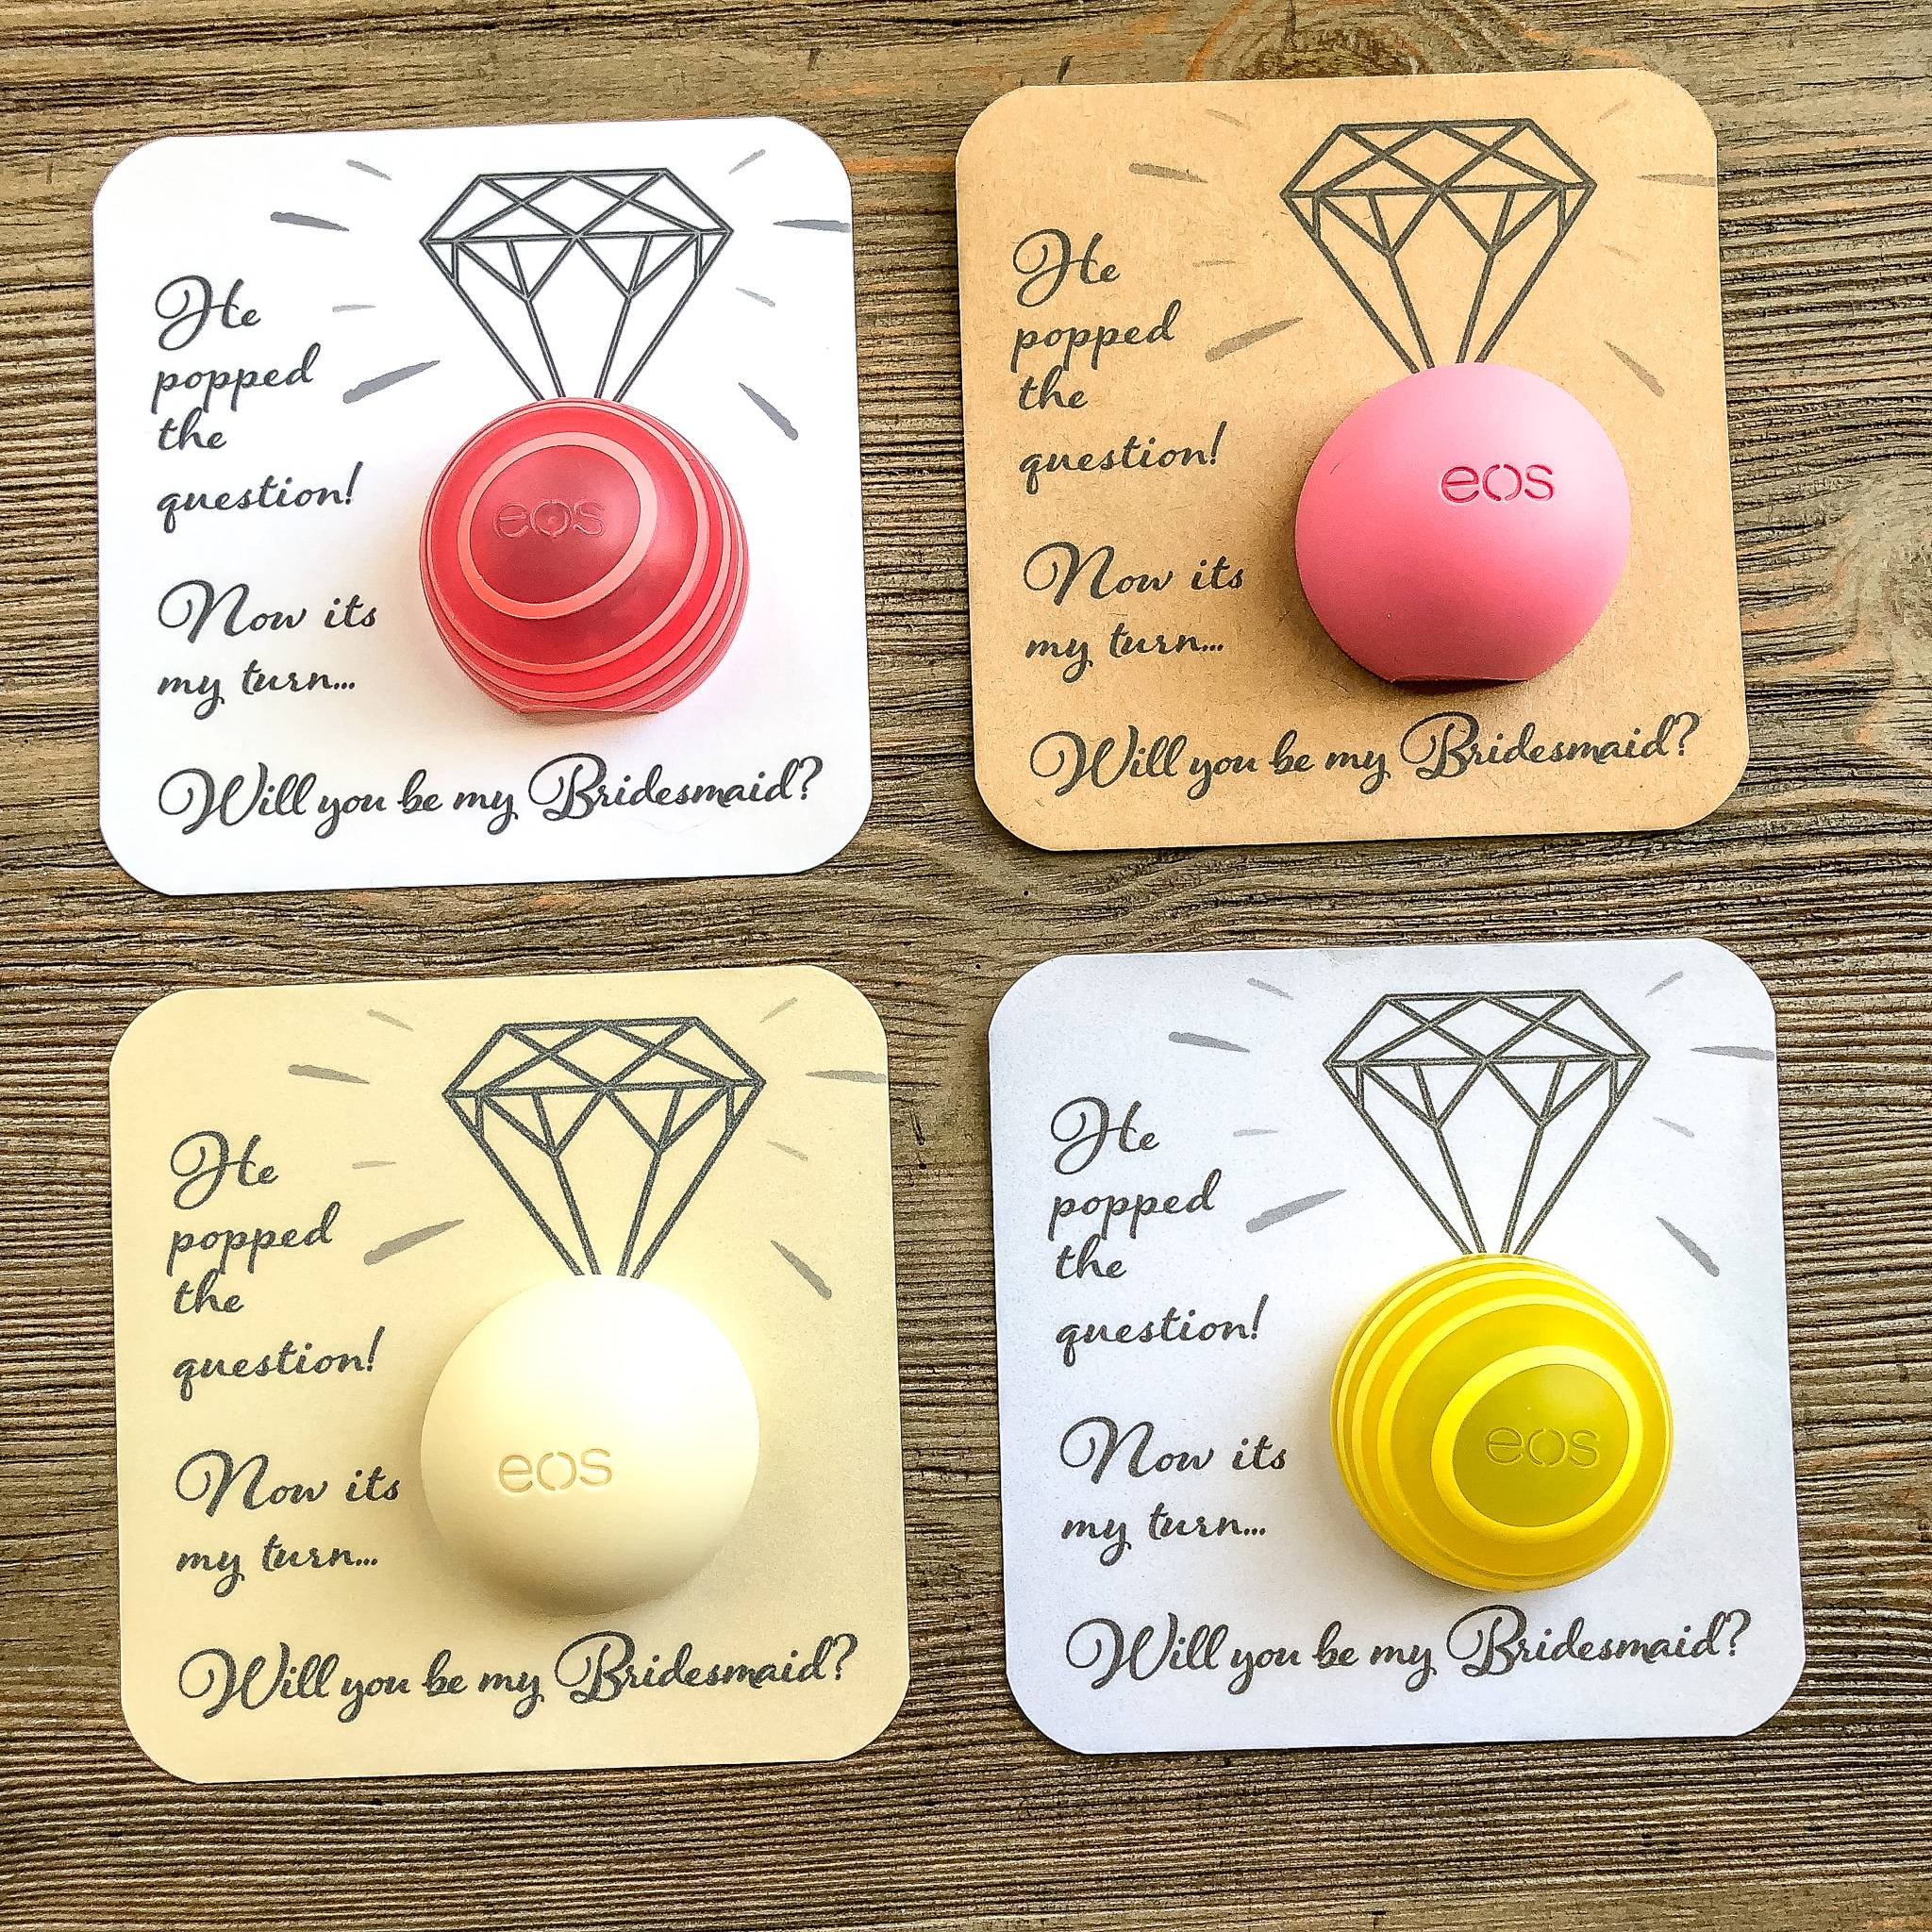 He popped the questions! Now its my turn... Will you my my bridesmaid card stock and EOS lip balm